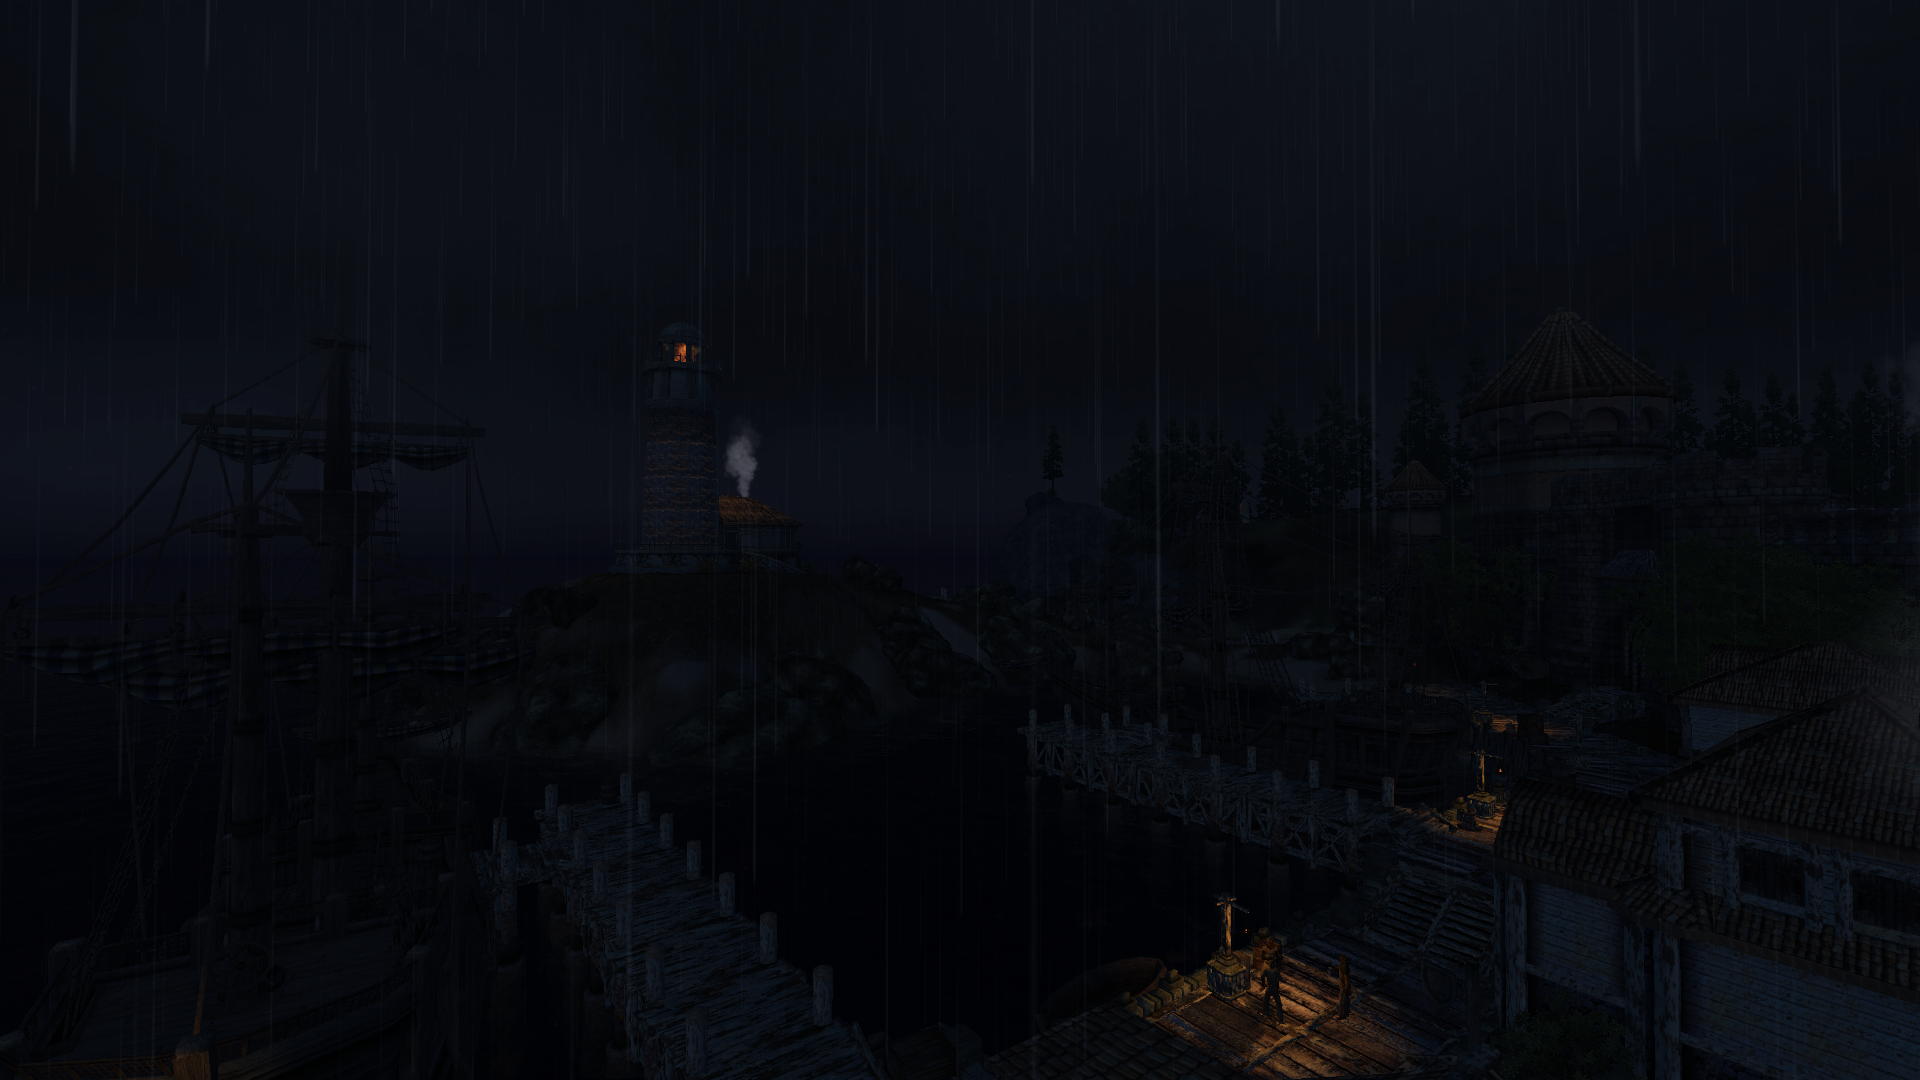 Rainy night at Anvil harborside